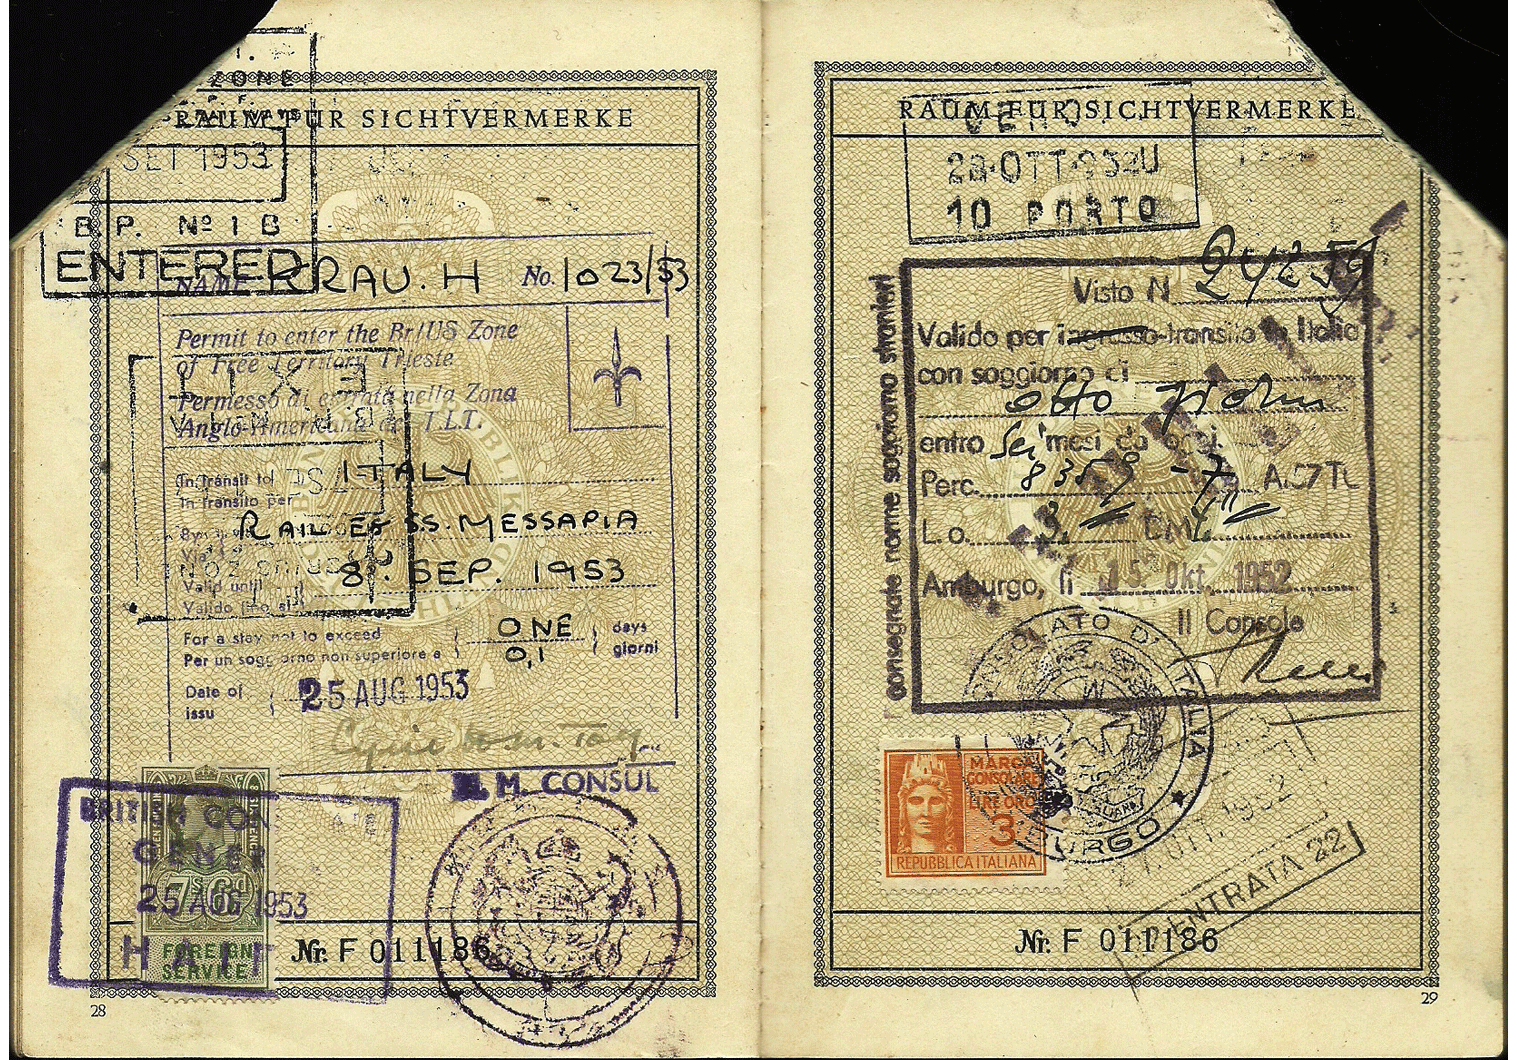 TRIESTE - Allied Identity card in post-war occupational zone in Europe.